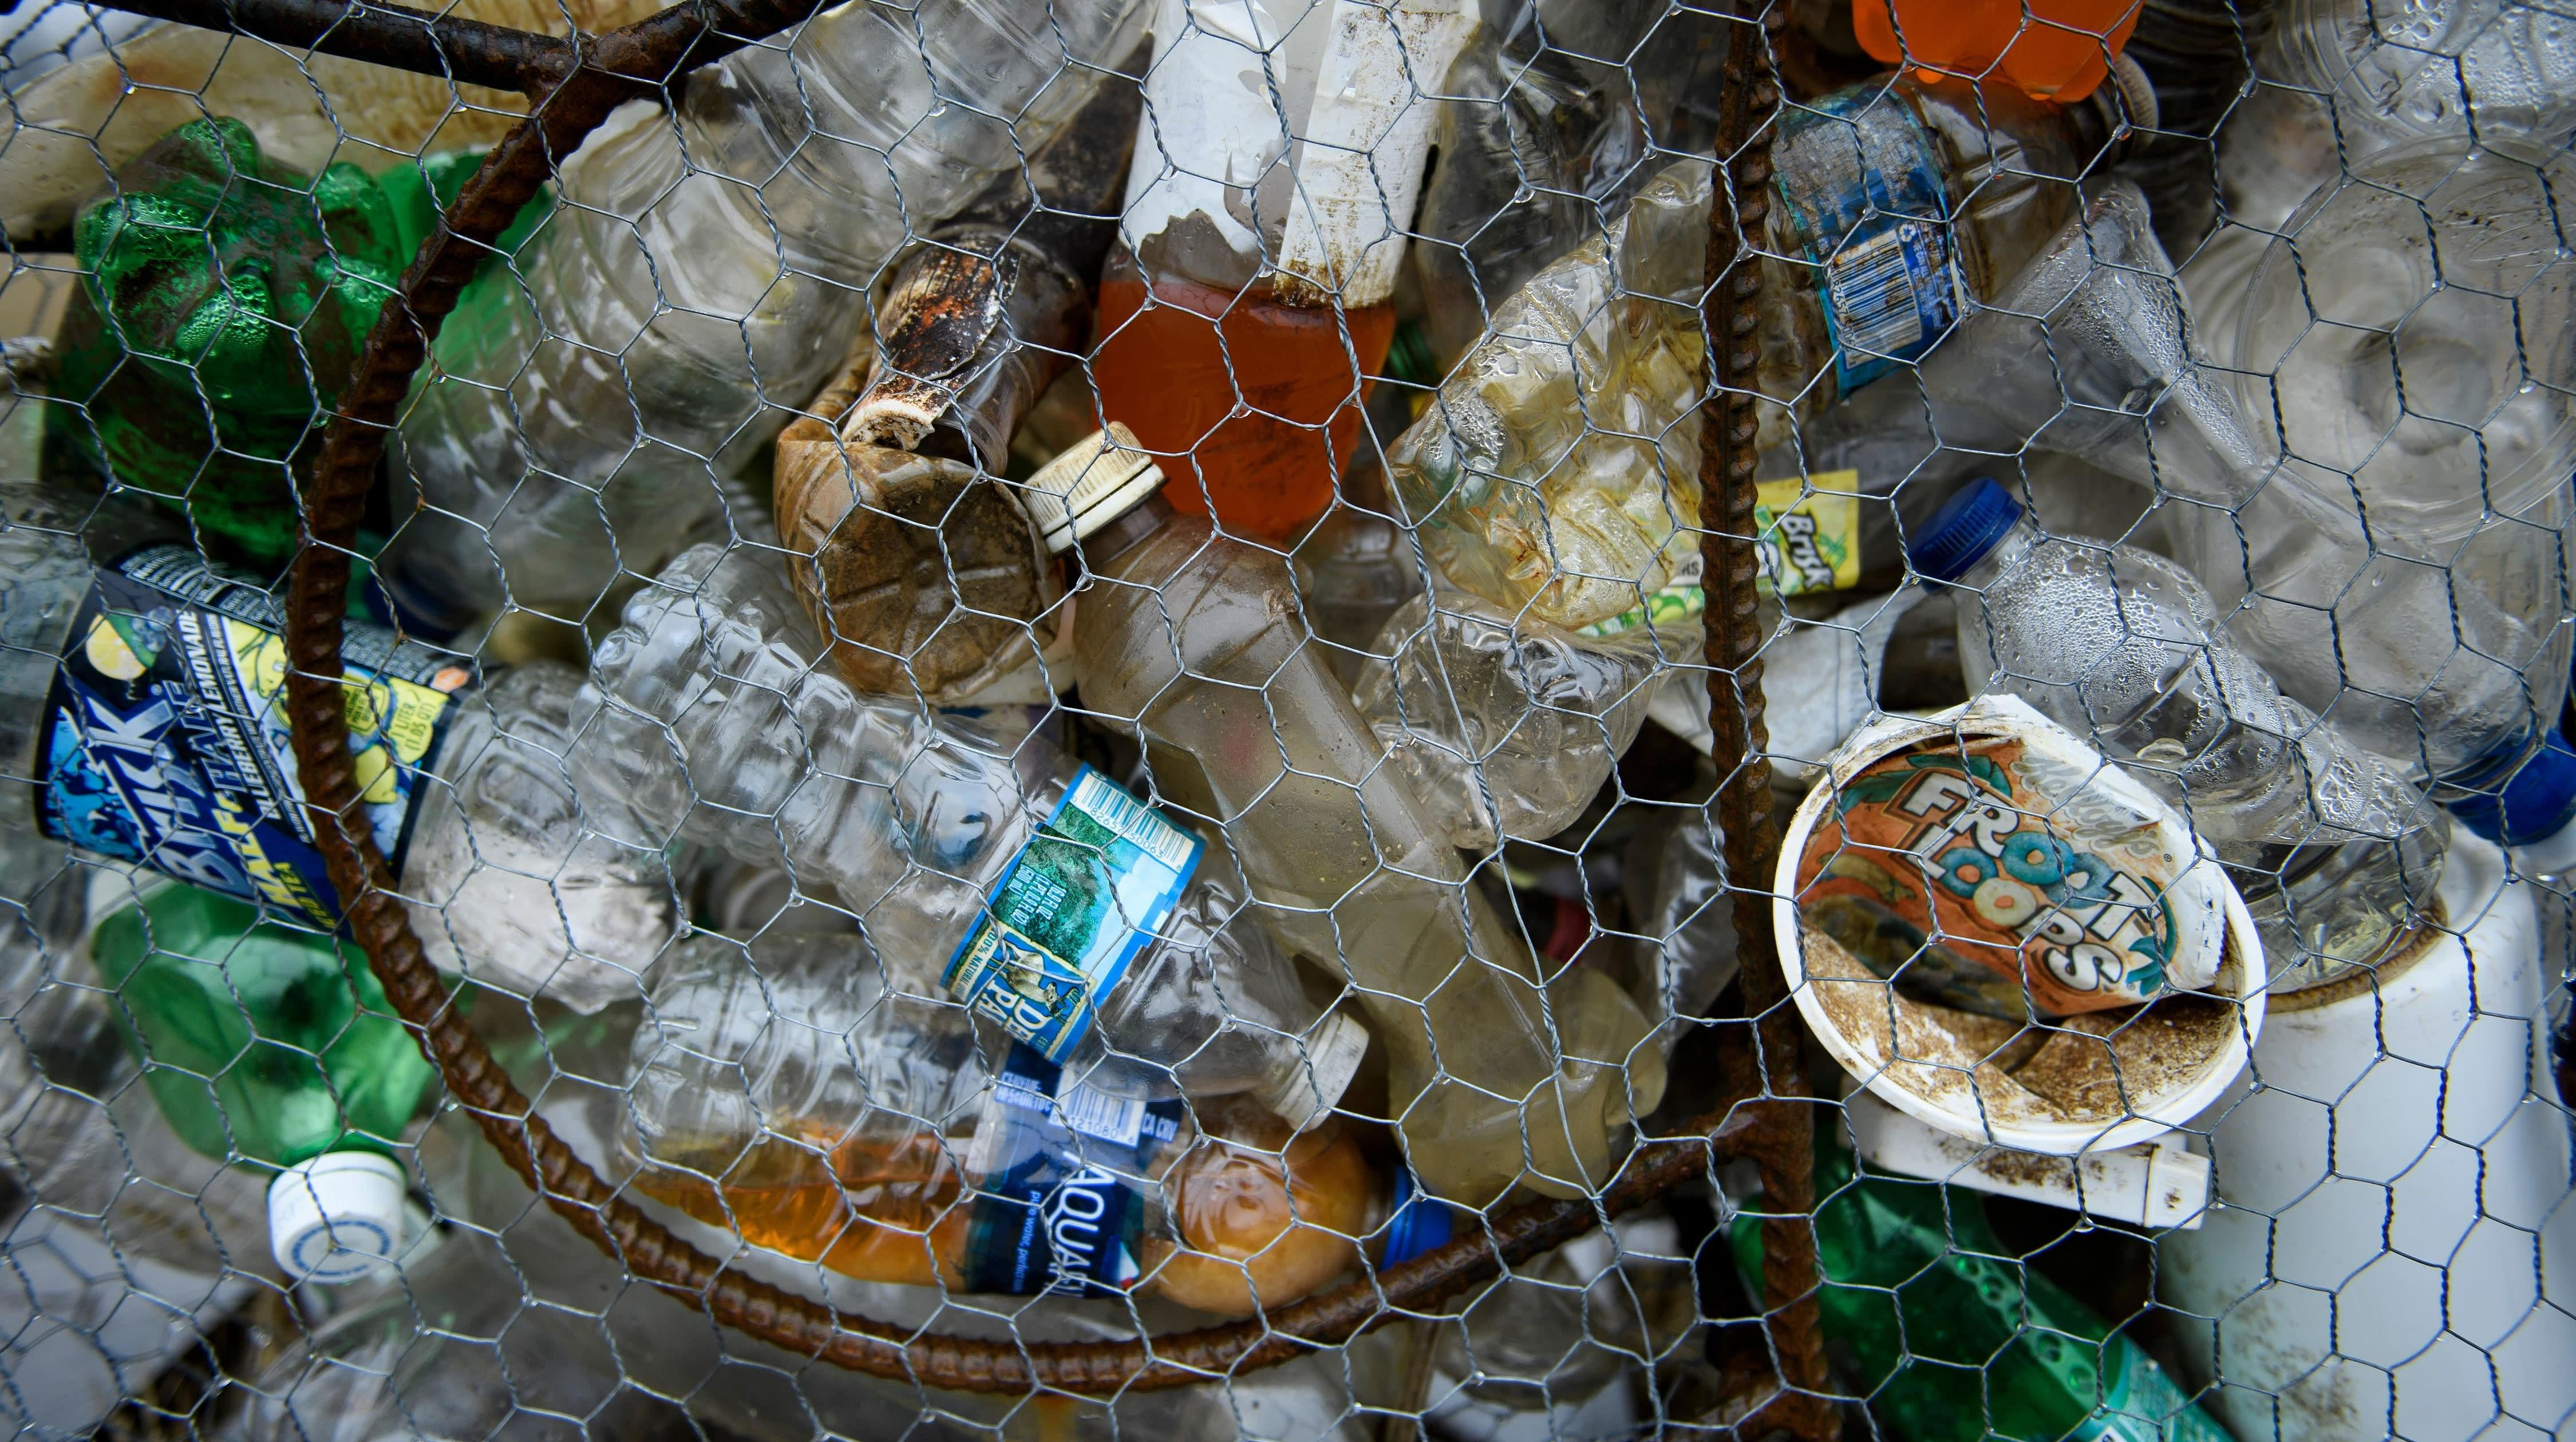 Coke, Pepsi, And Other Big Brands Are Getting Sued For Contributing To The Plastic Crisis